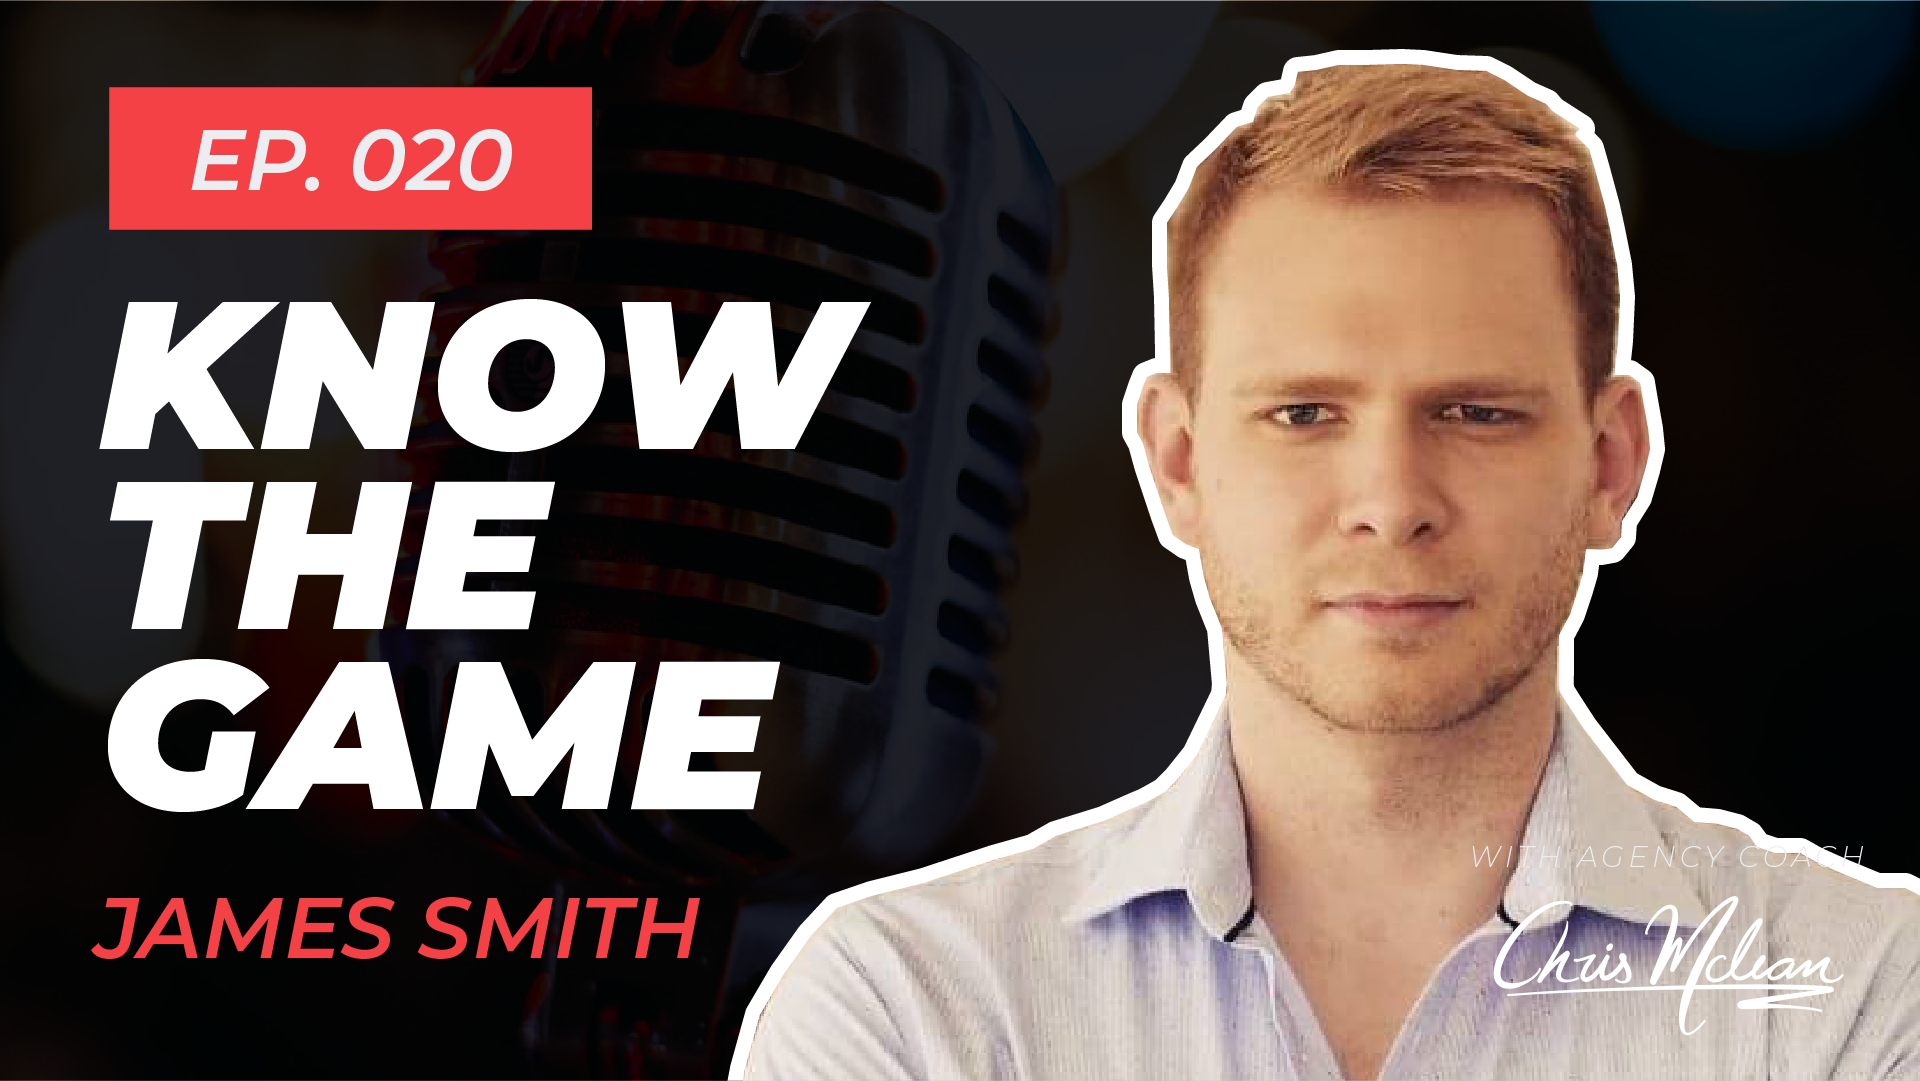 EP020 | Know The Game with James Smith